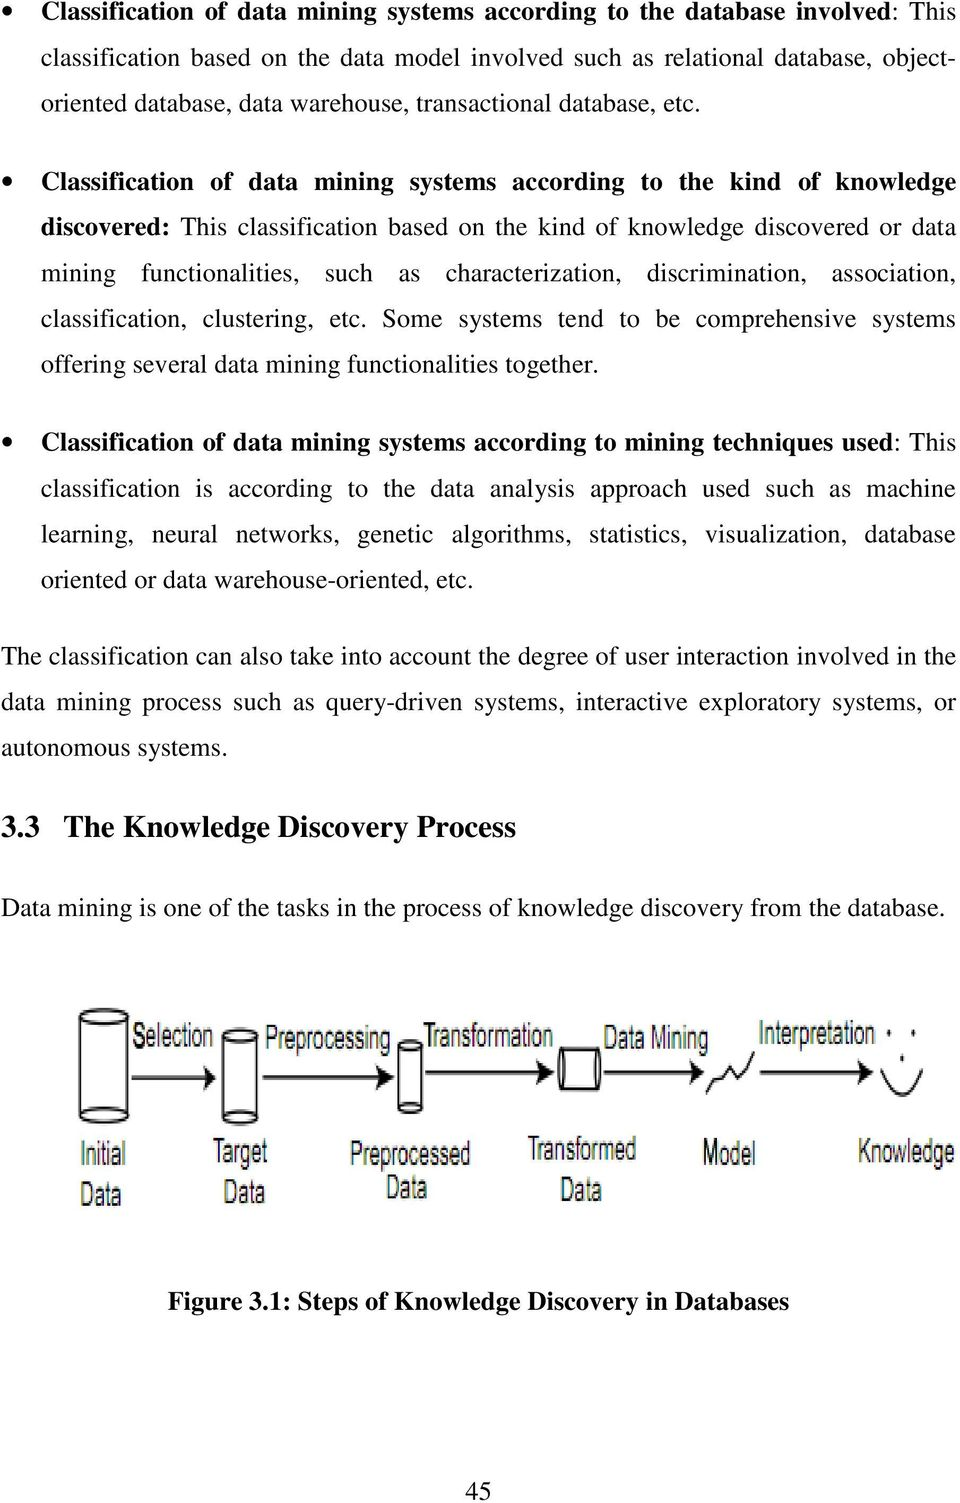 Classification of data mining systems according to the kind of knowledge discovered: This classification based on the kind of knowledge discovered or data mining functionalities, such as